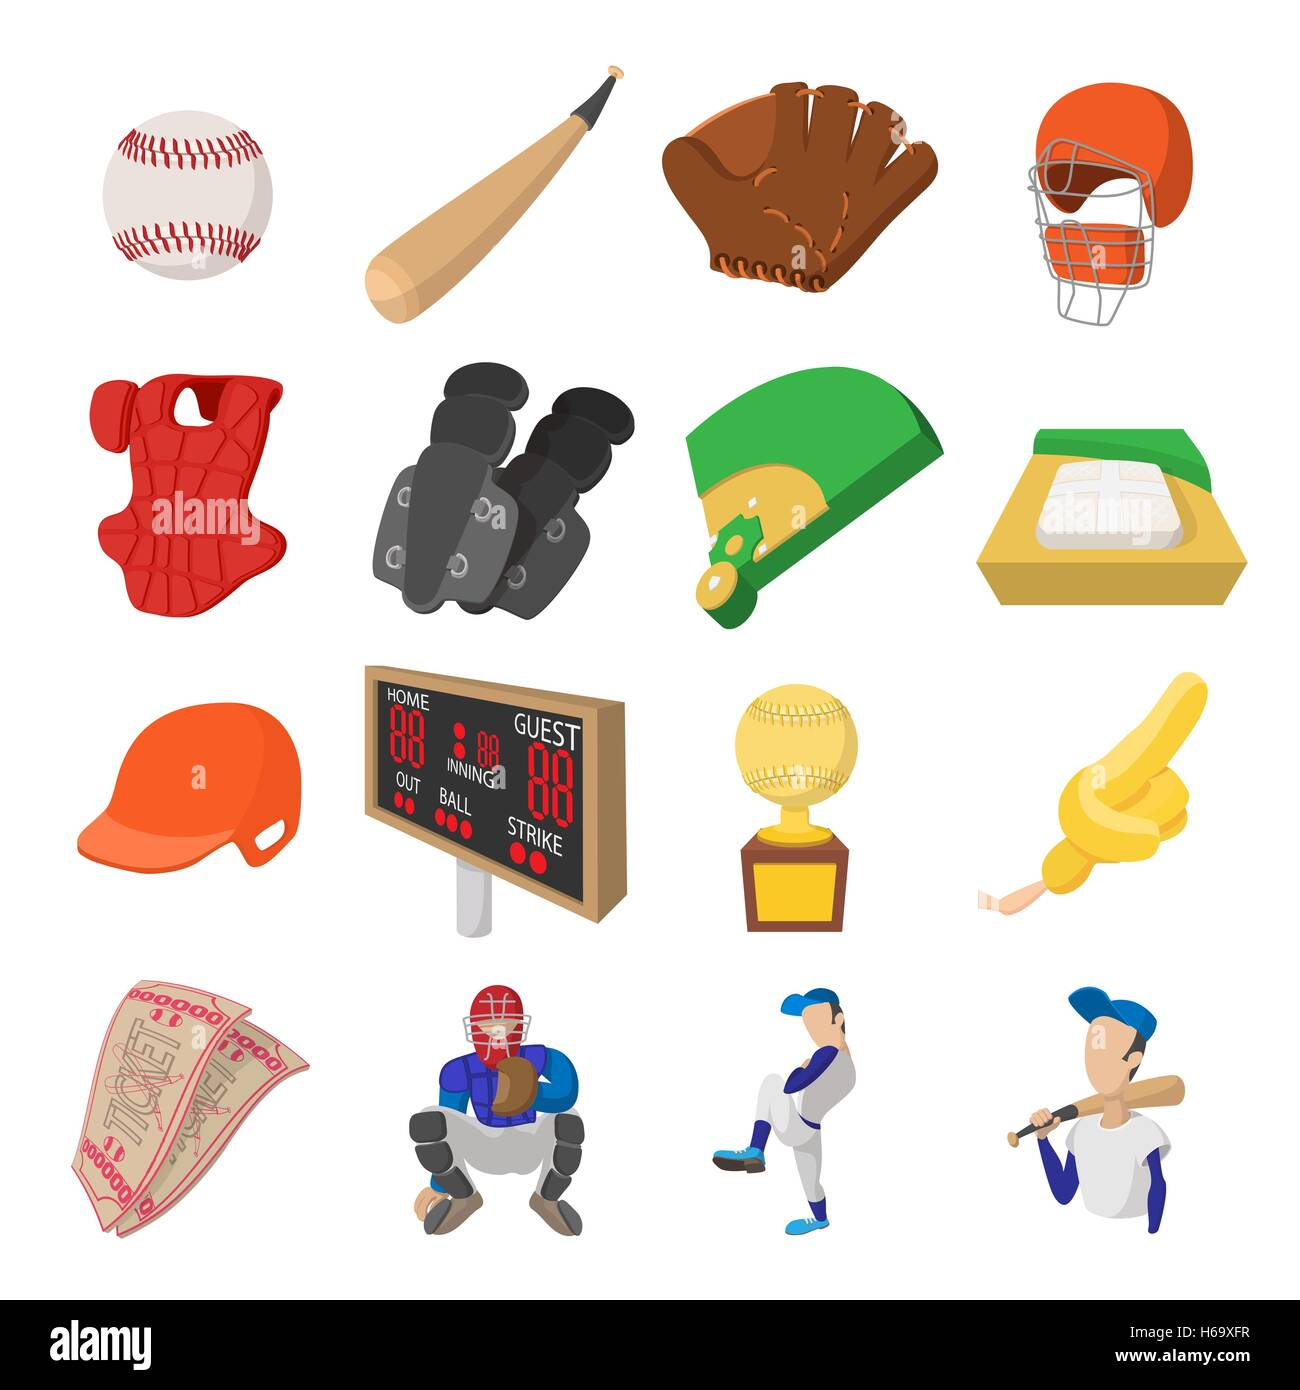 American football cartoon icons - Stock Image